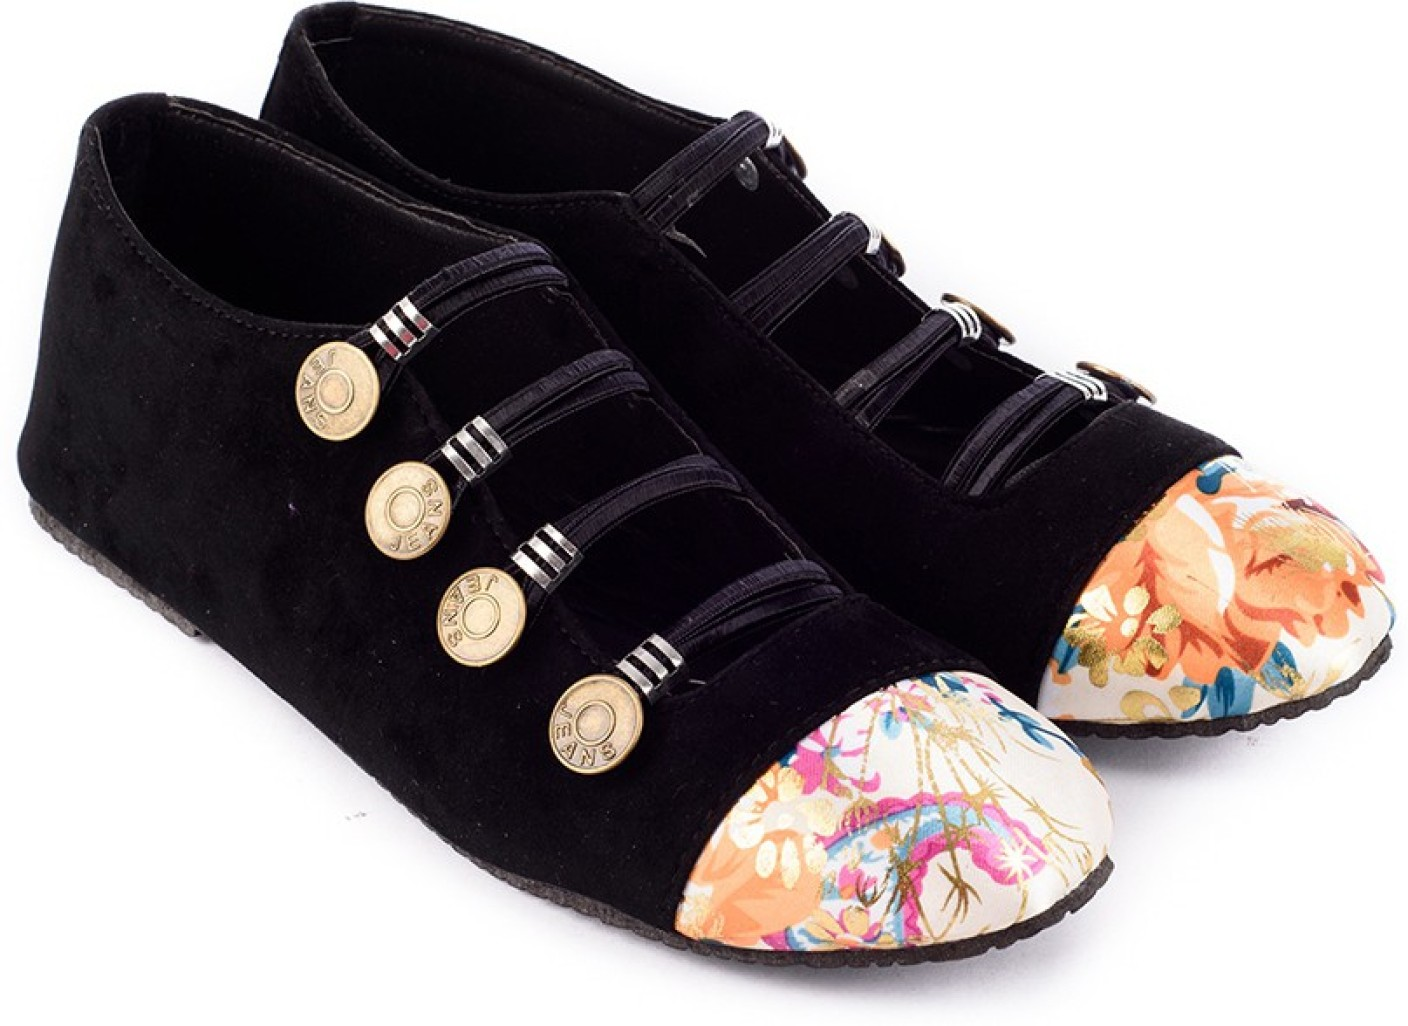 myra black girls personals These gorgeous dyeable low wedge thong sandals transition effortlessly from day to evening low wedge thong sandal feature glittering rhinestones and pearls lining the t-strap, providing just en.